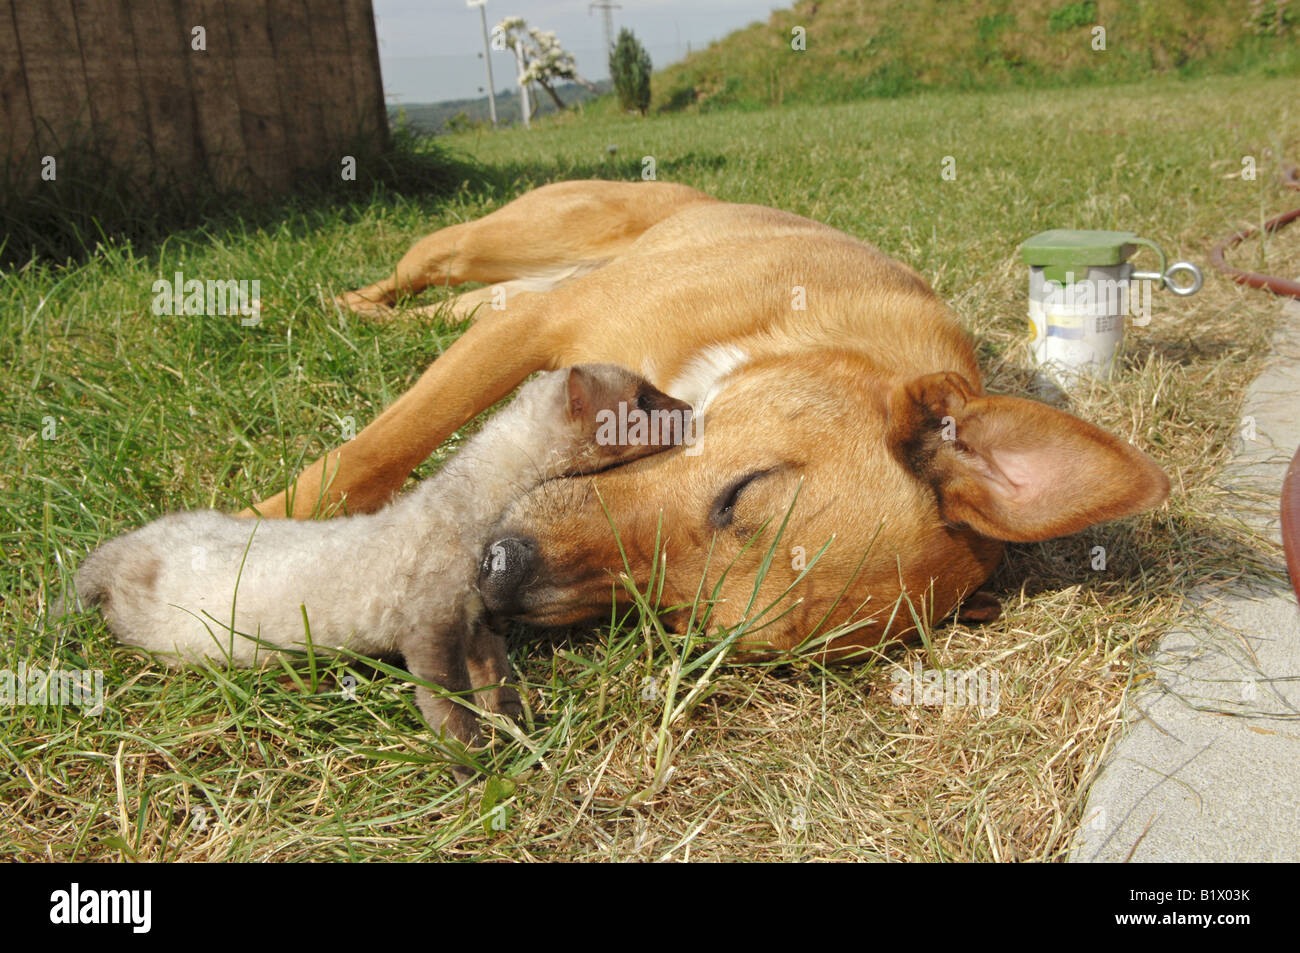 animal friendship: half breed dog and young beech marten - lying in the meadow - Stock Image